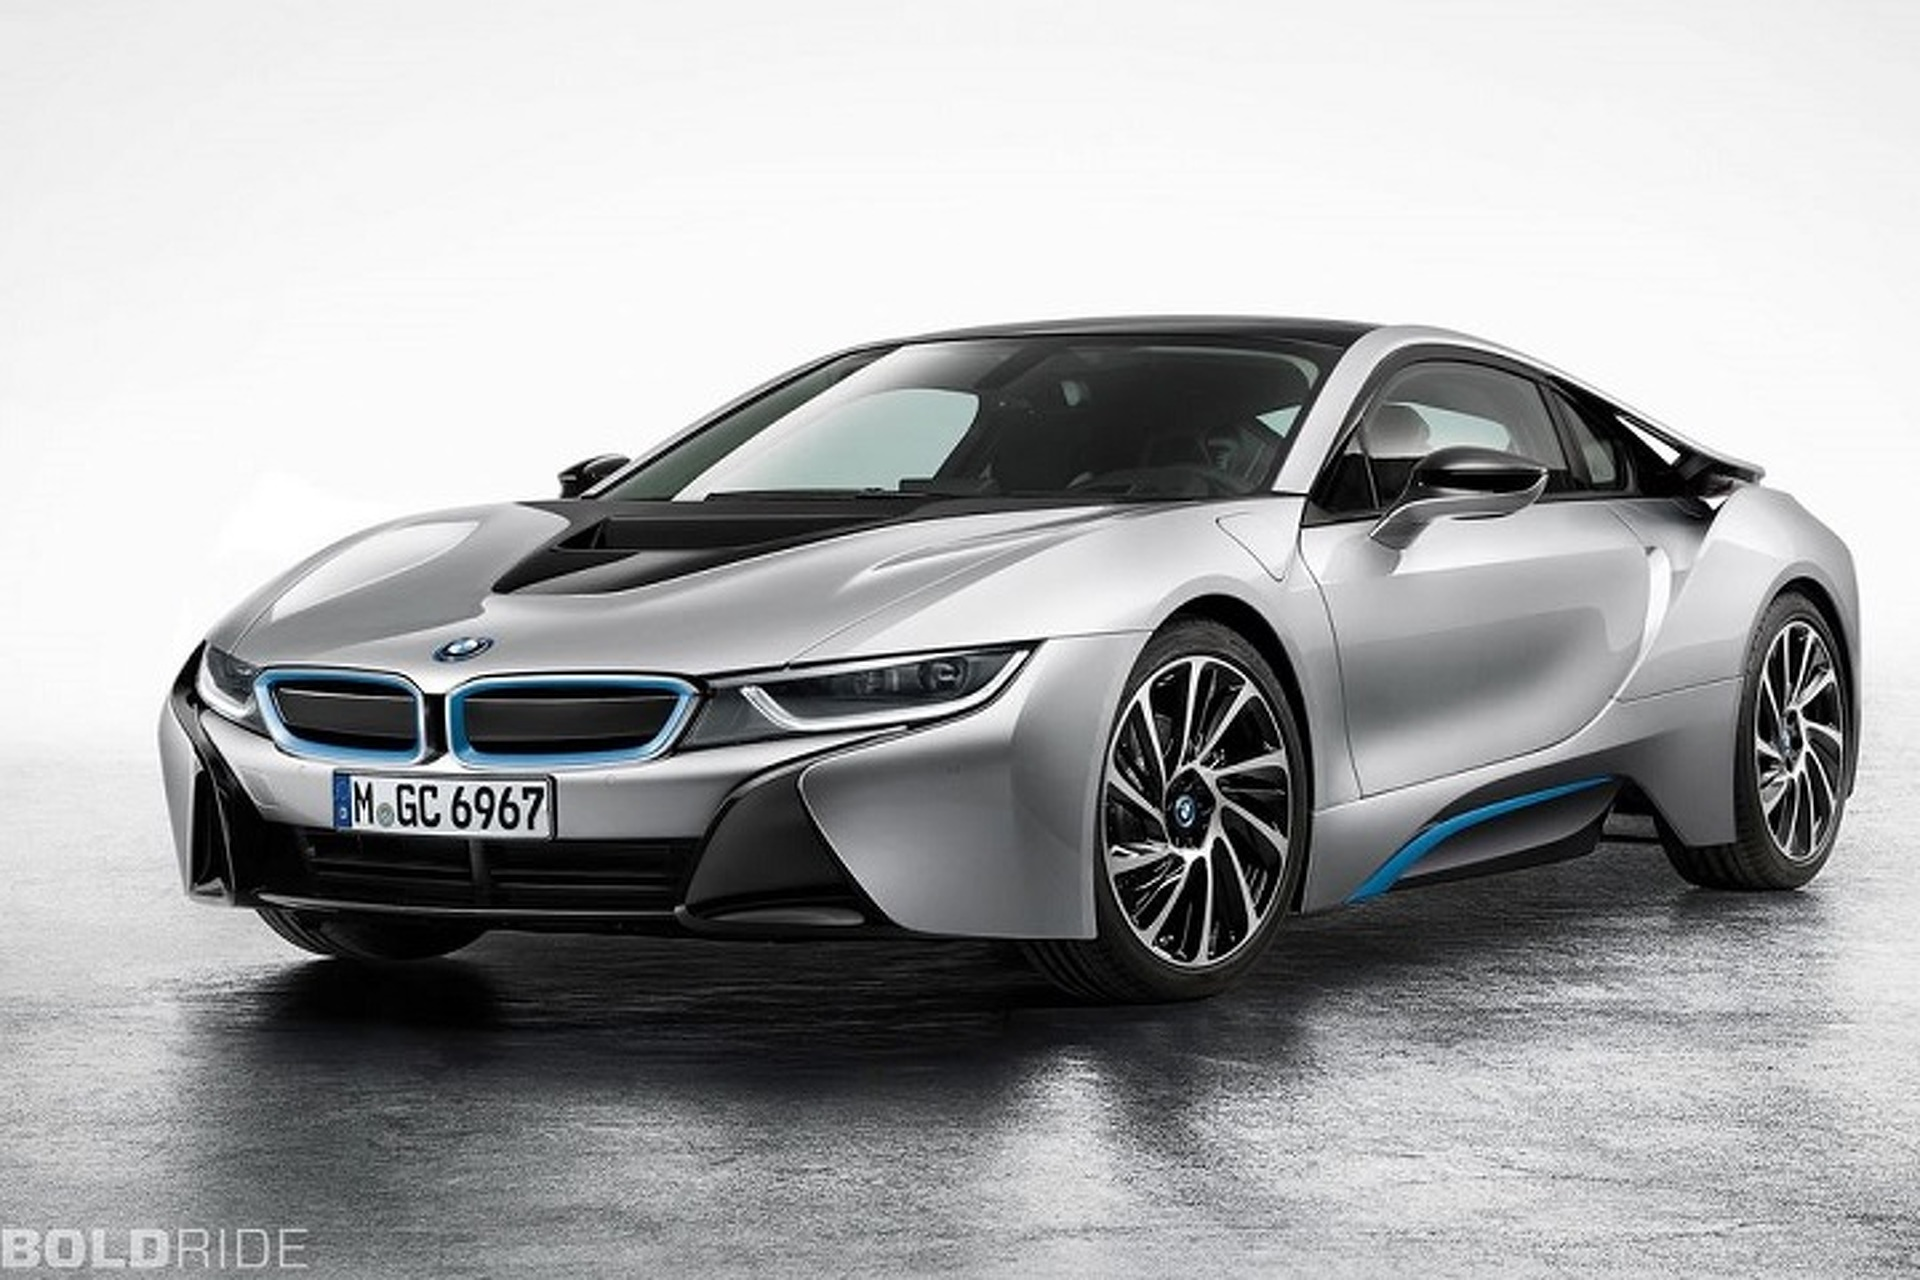 West Coast Customs Boss Drives a Beautiful Protonic Blue BMW i8